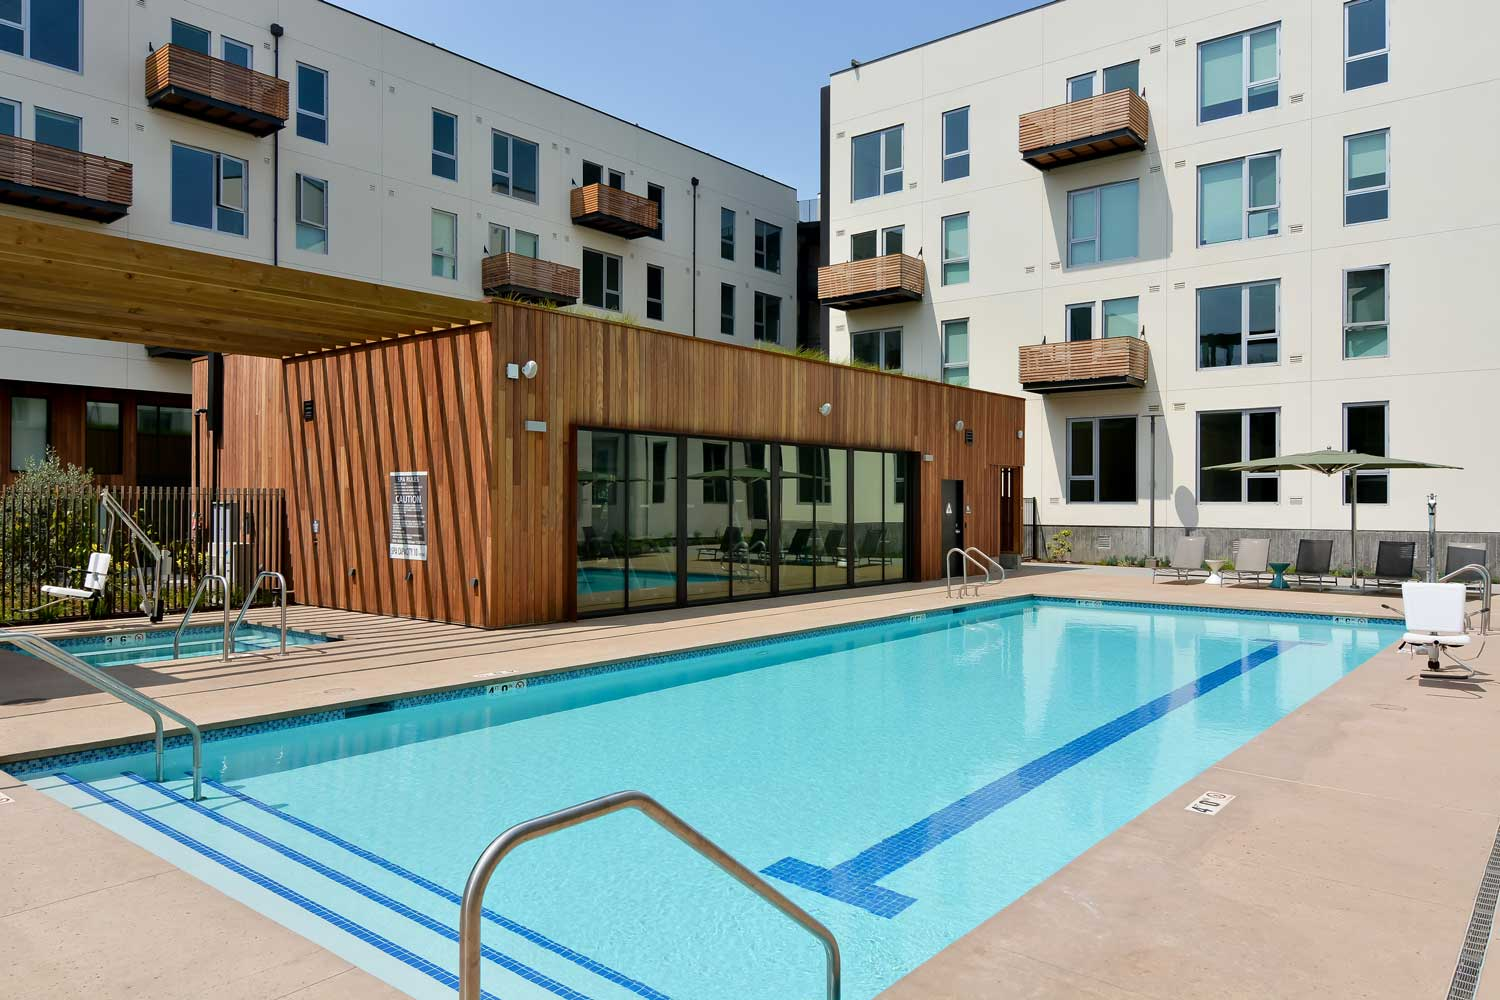 Luxury Apartments in Union City California - The Union Flats Pool